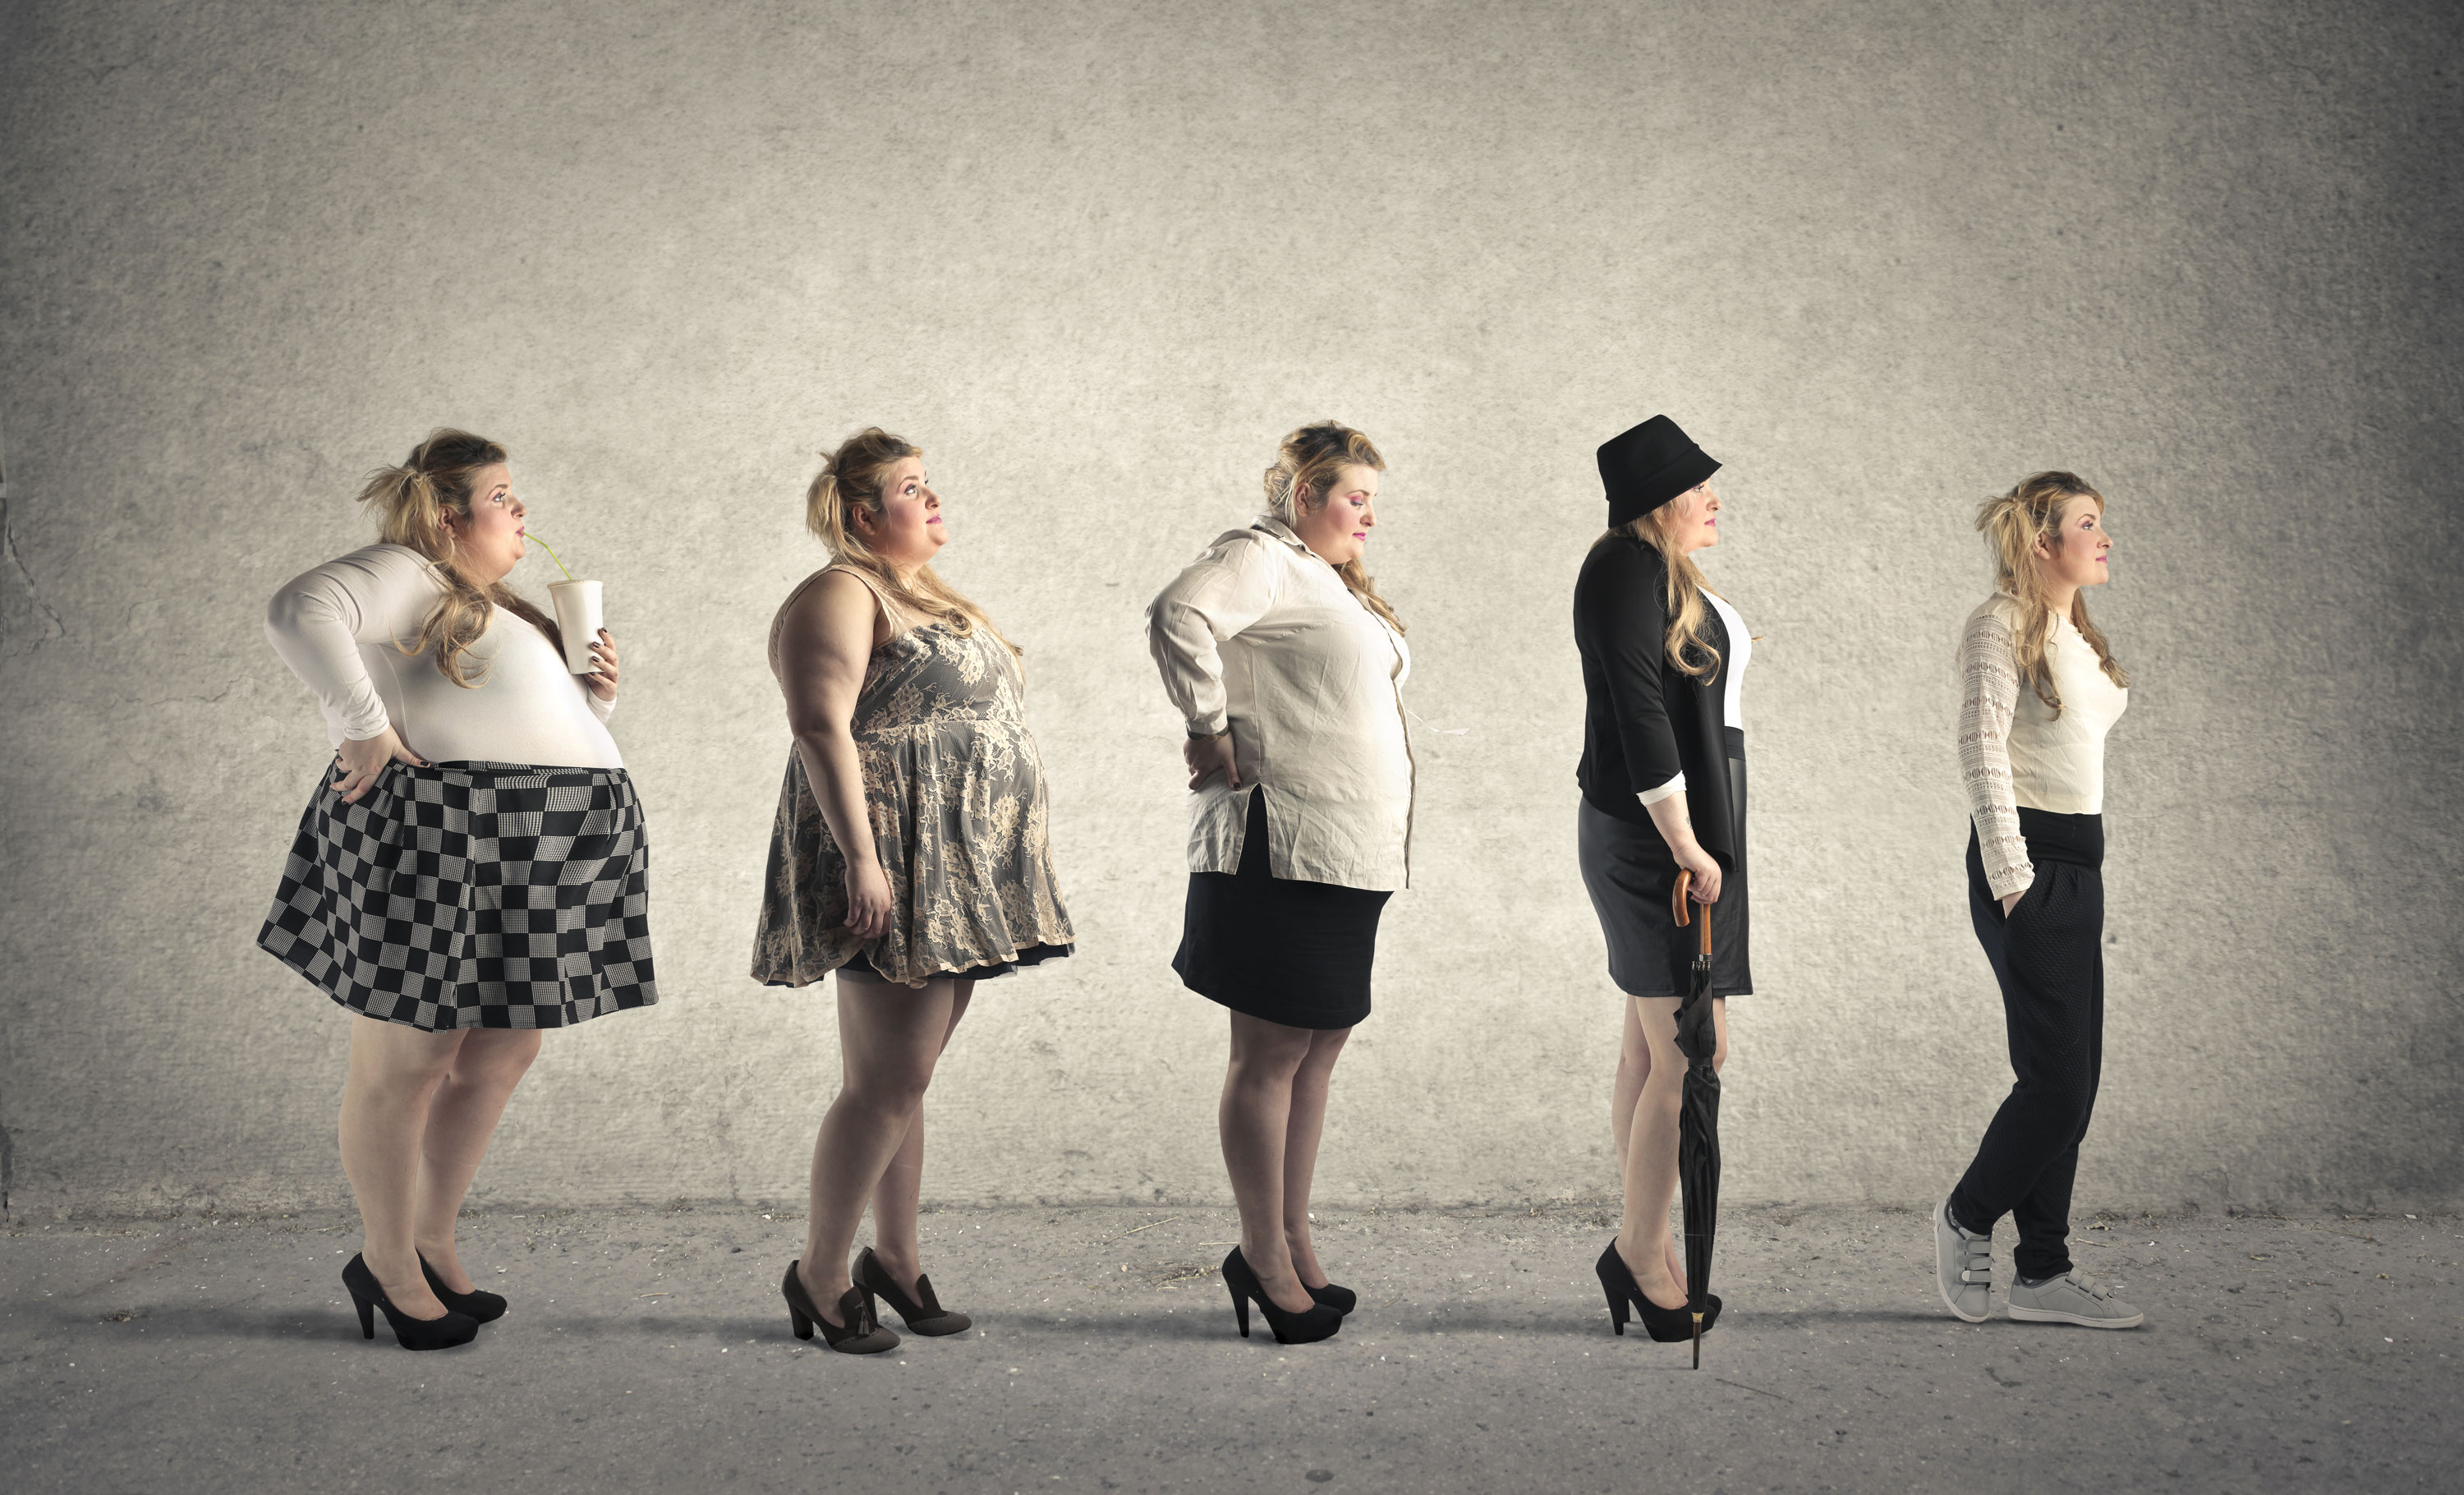 Obesity and Waist-to-Hip Ratio